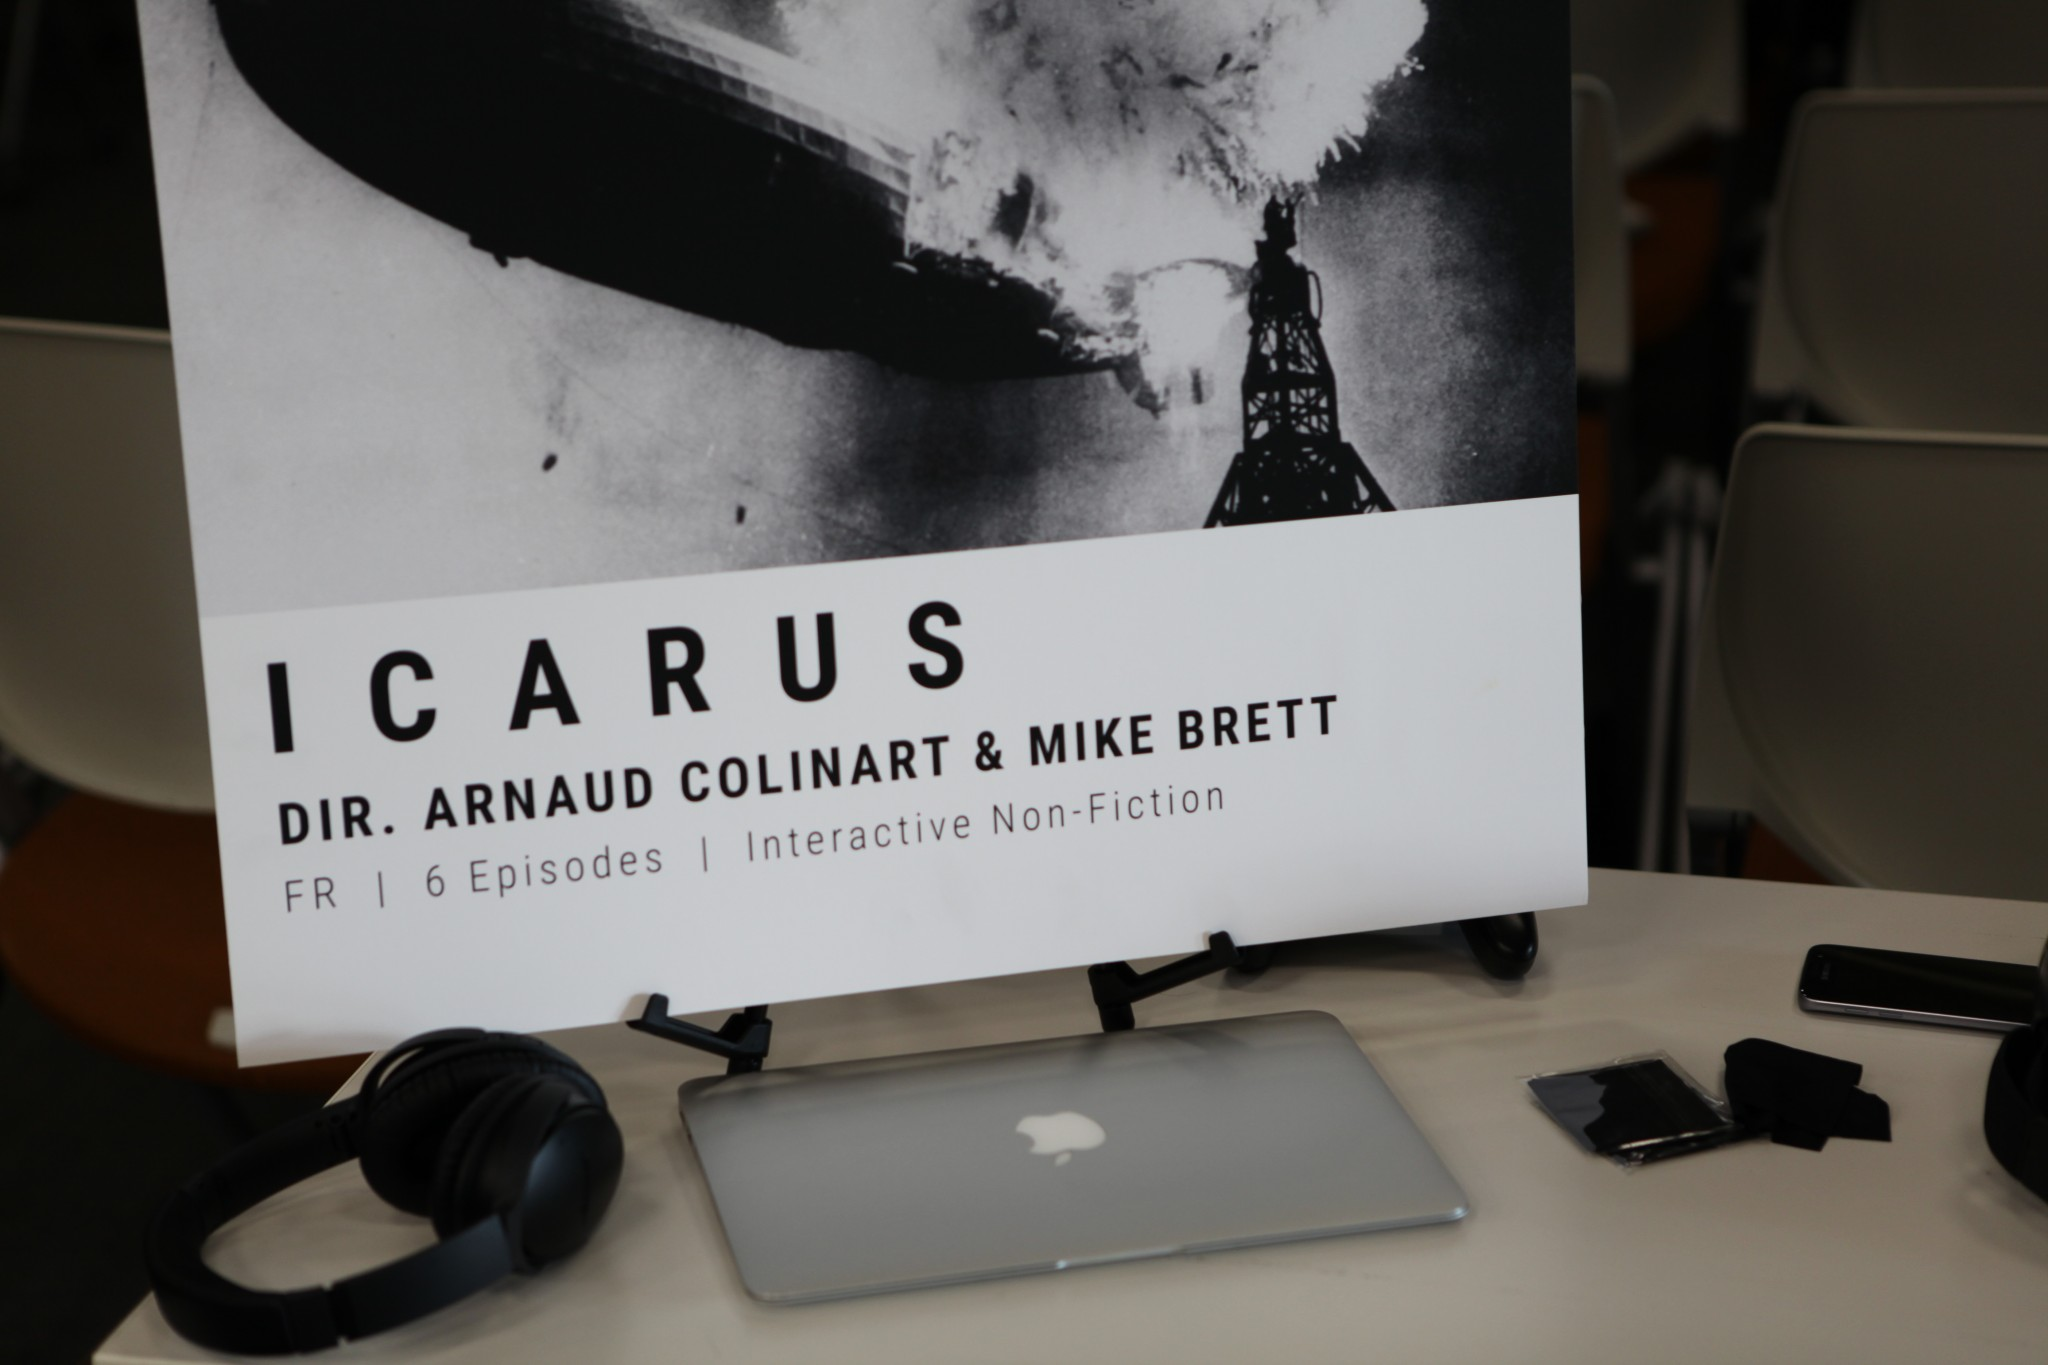 The Icarus demo booth.